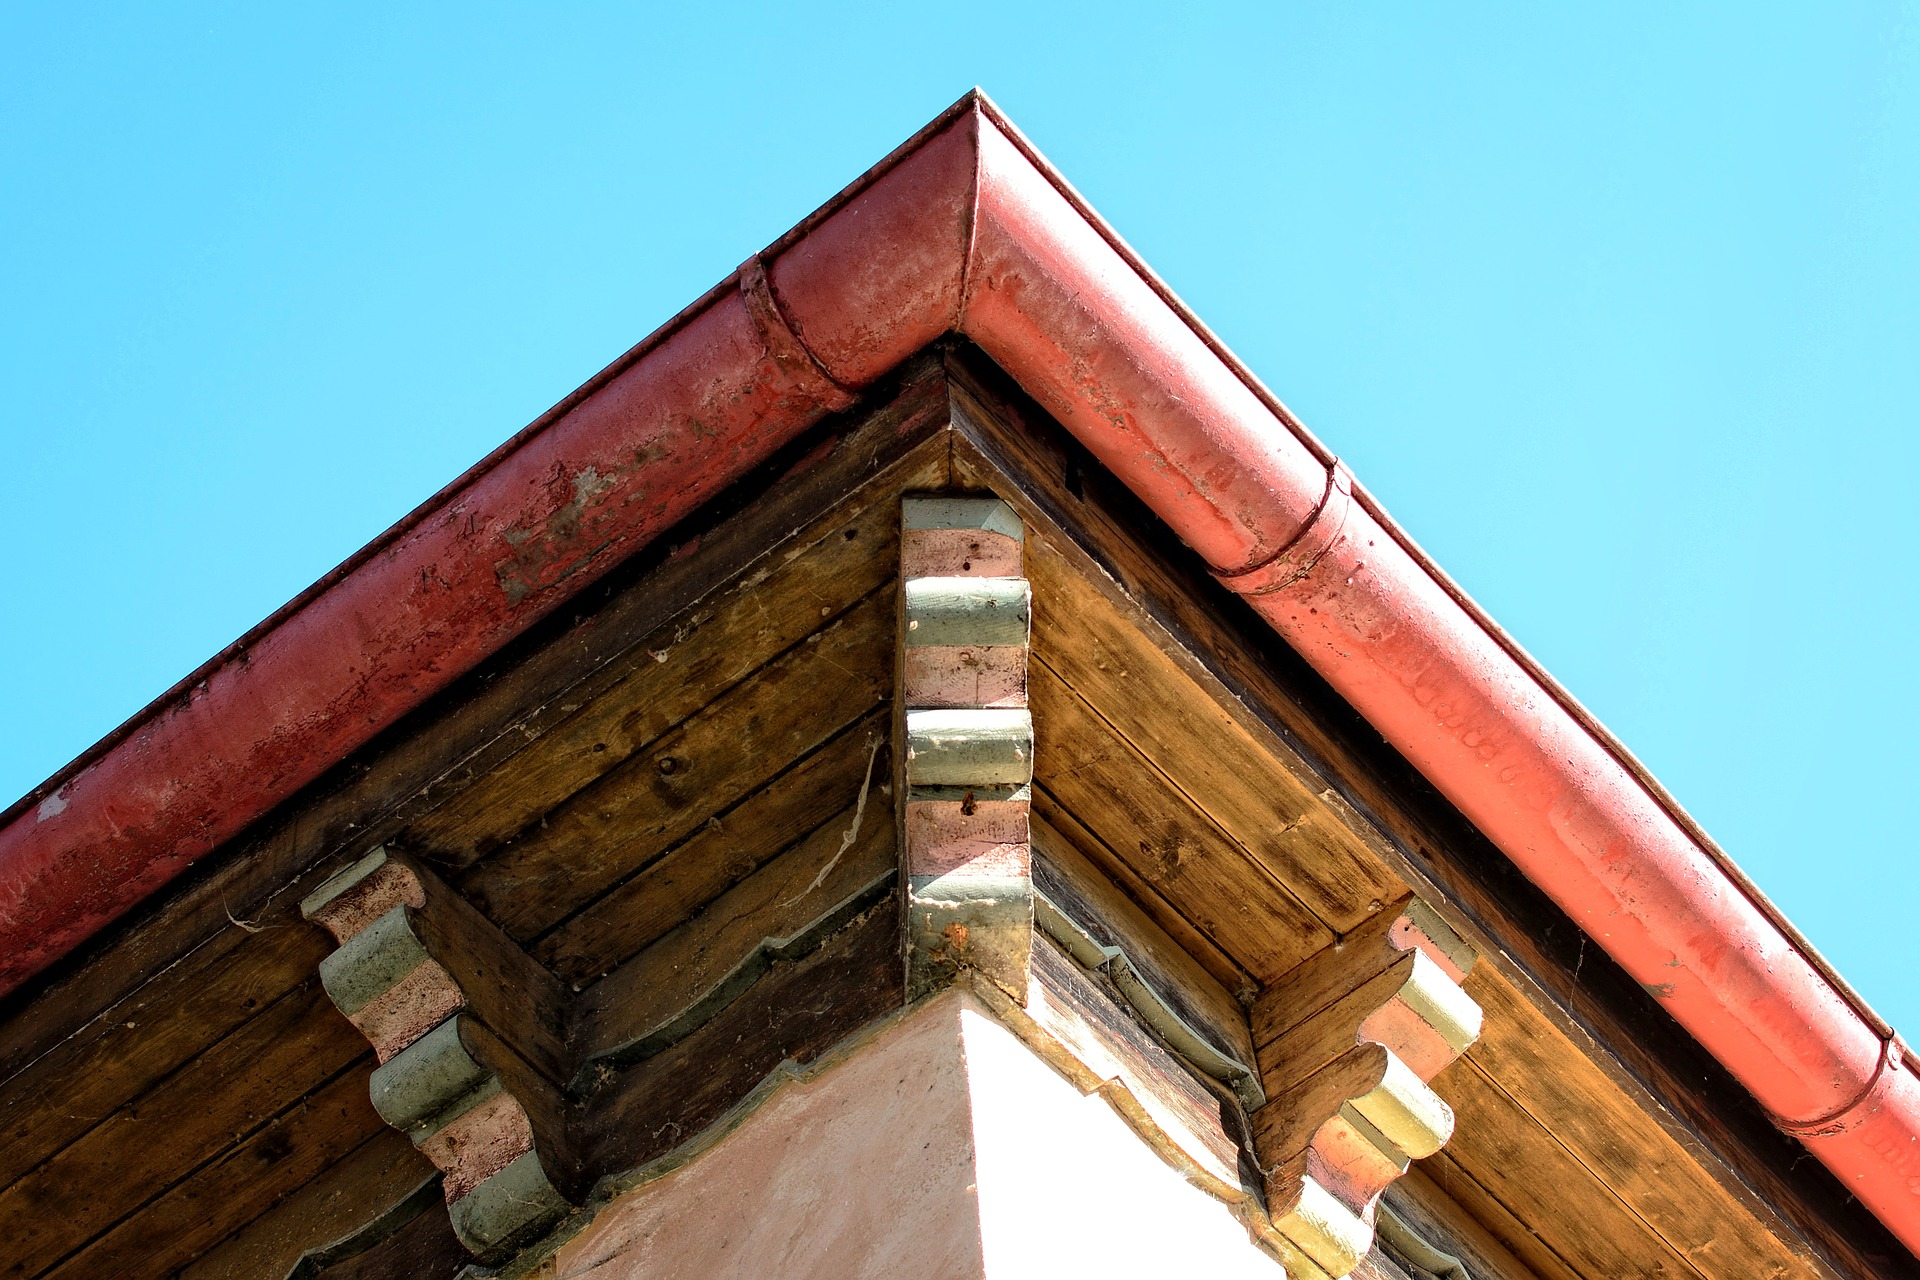 Gutter repair by roofing company in Austin